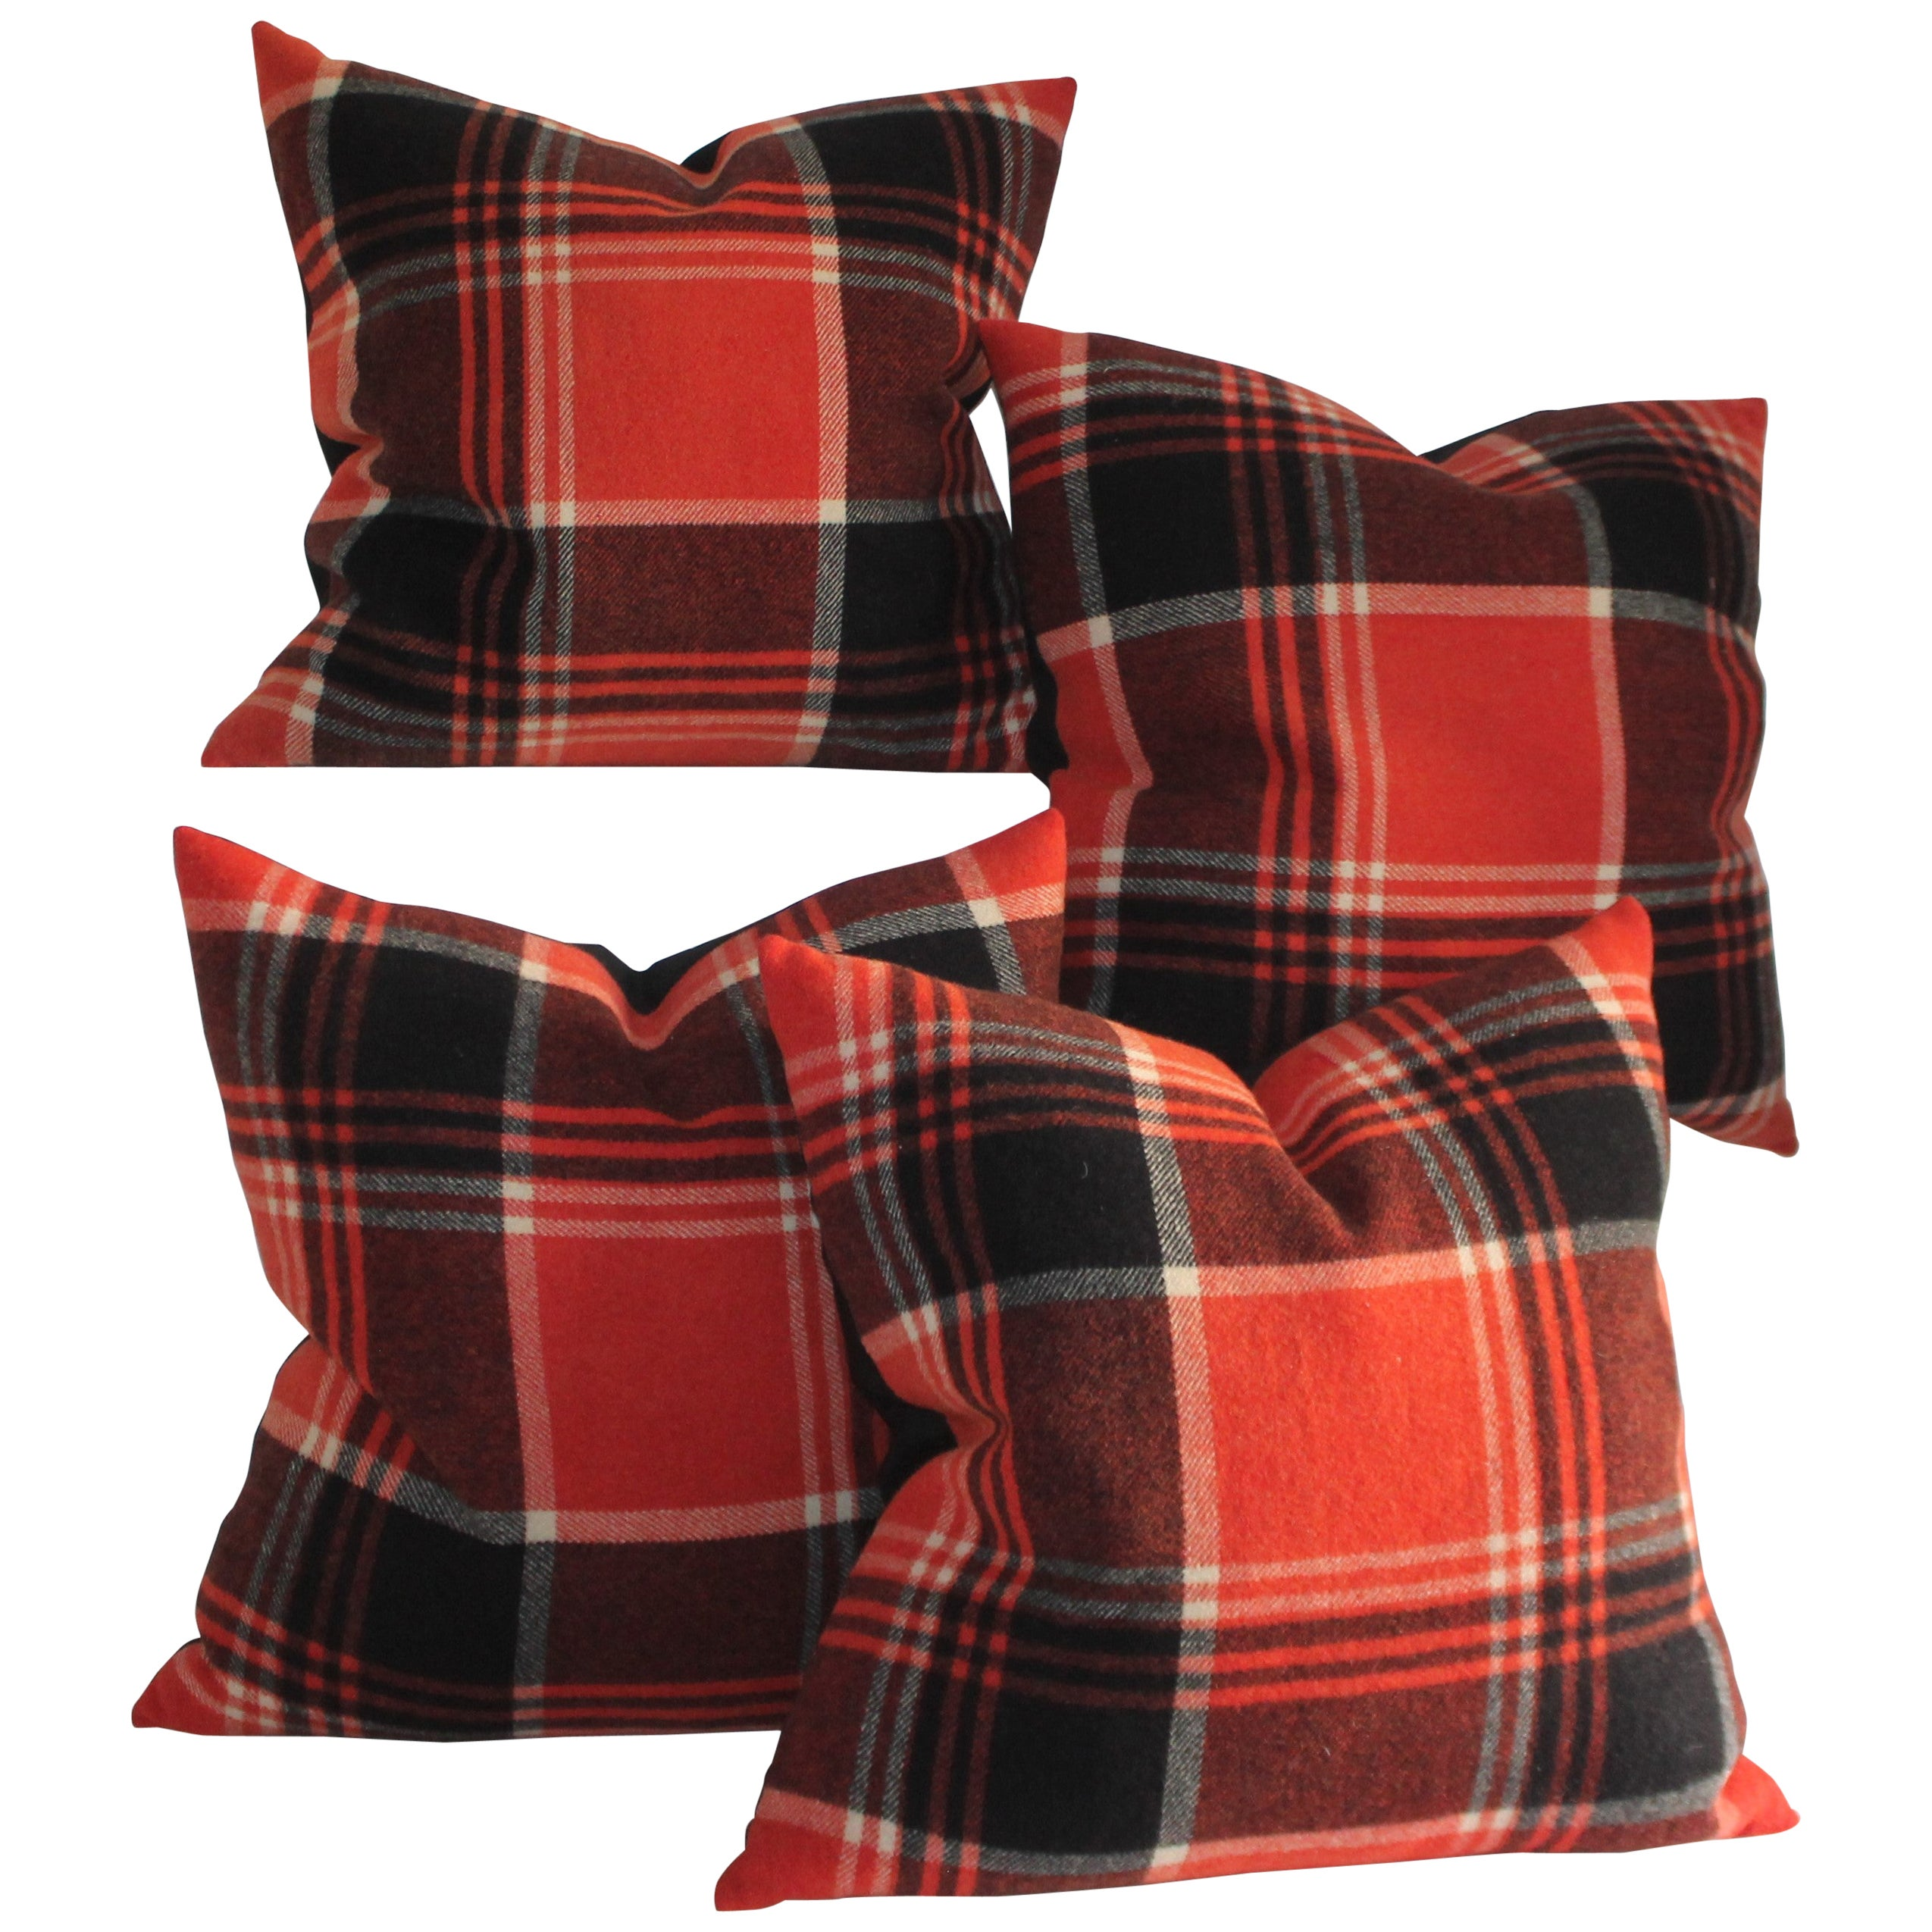 Collection of Four Plaid Blanket Pillows